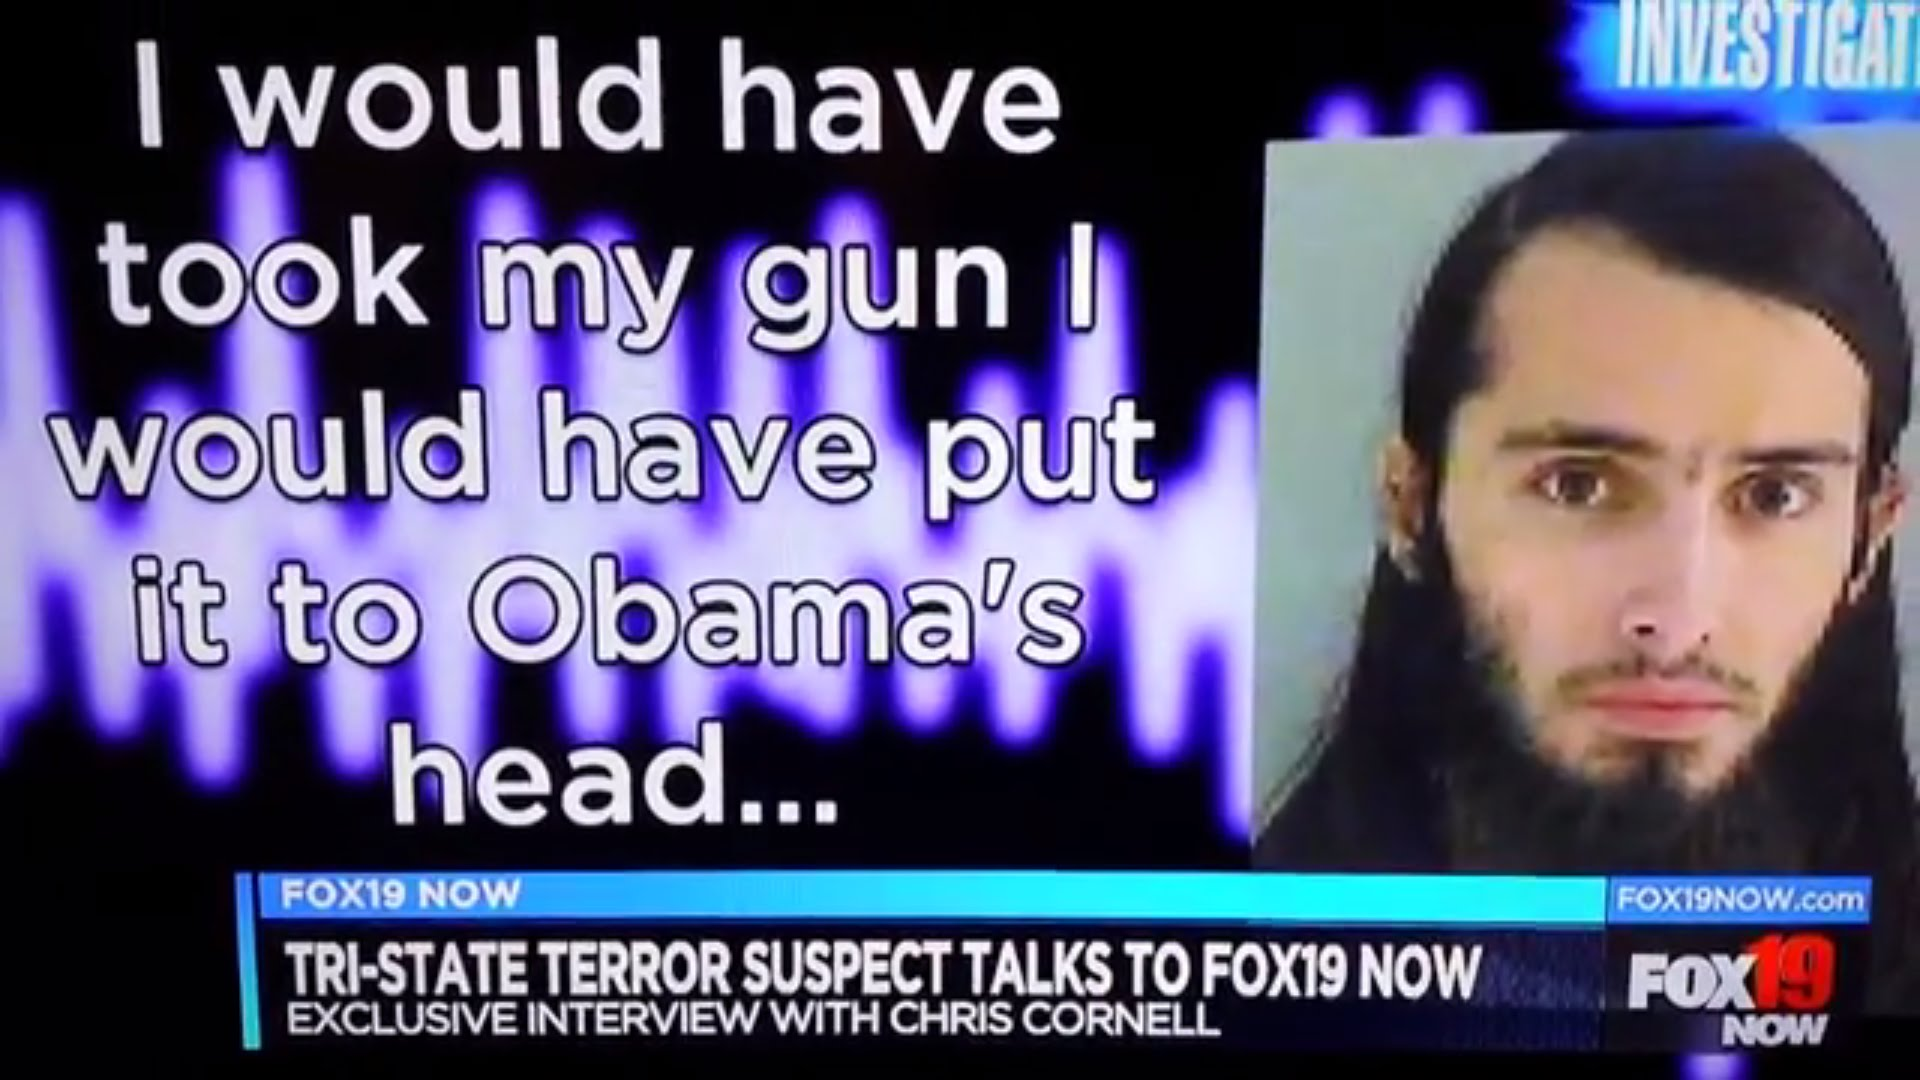 Obama Threats From Empty To Serious